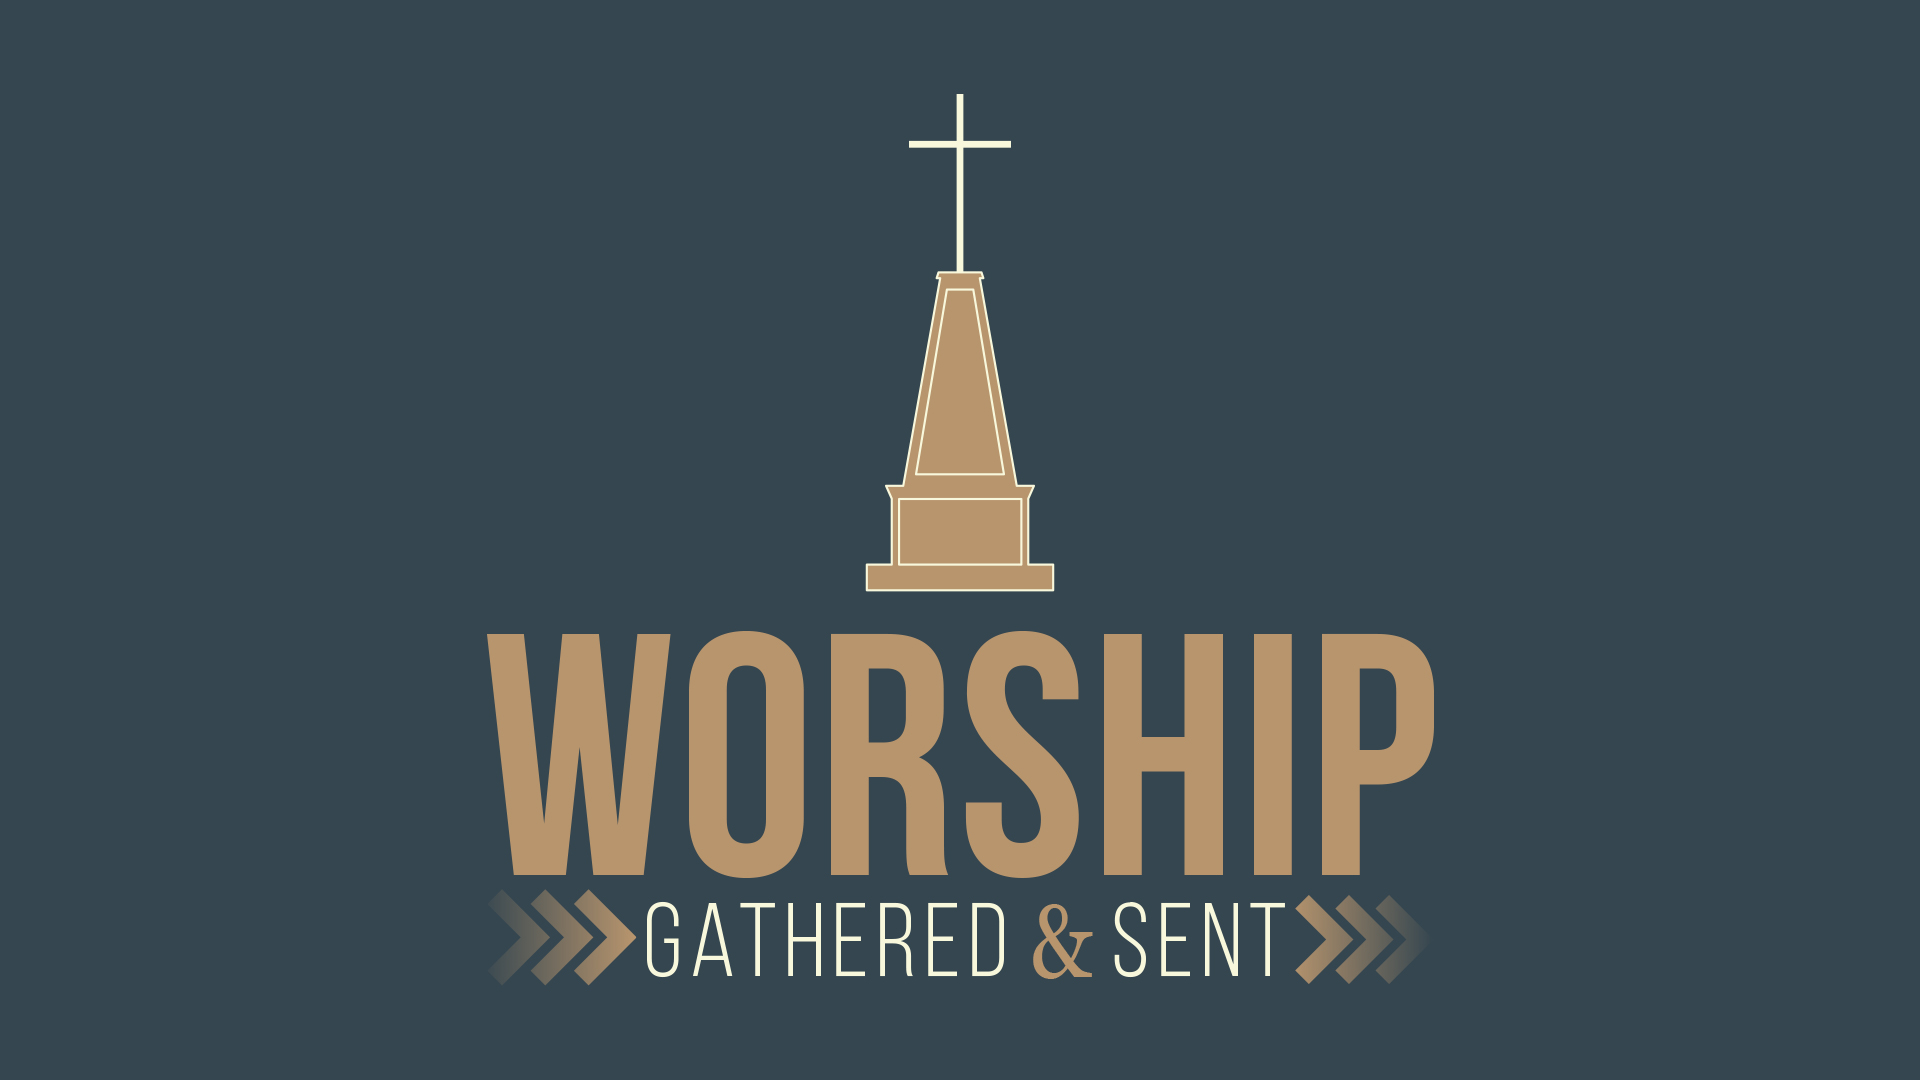 Worship: Gather & Sent